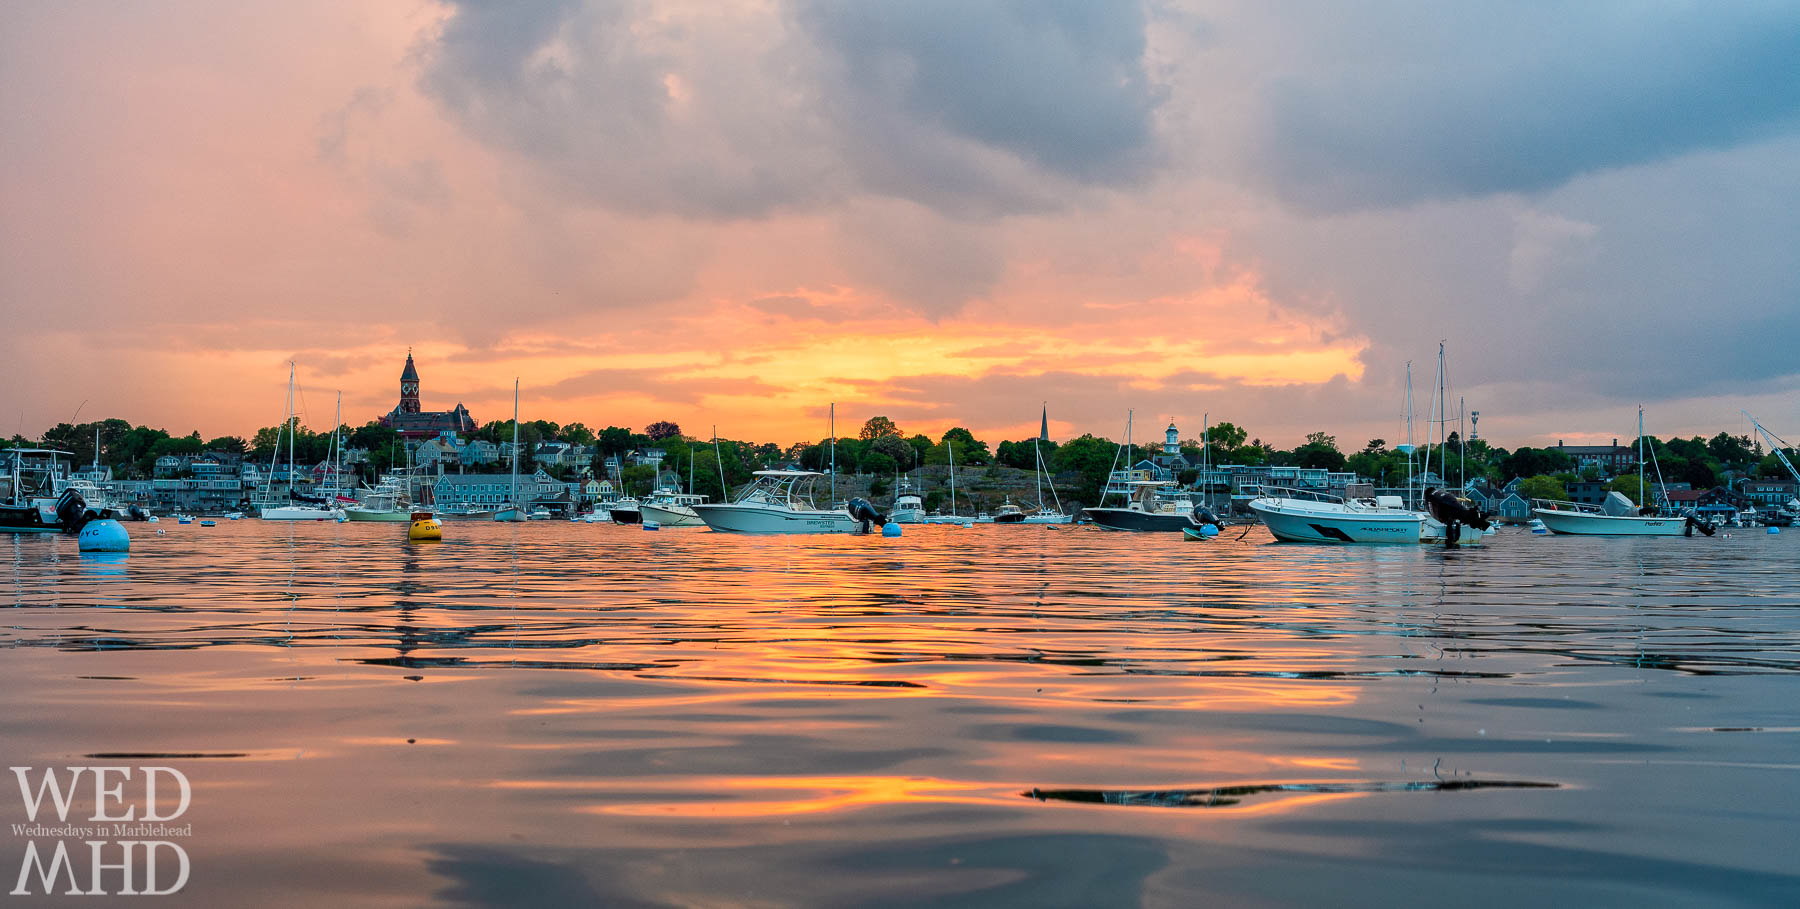 Getting low at the waters edge to capture a sunset over the town of Marblehead